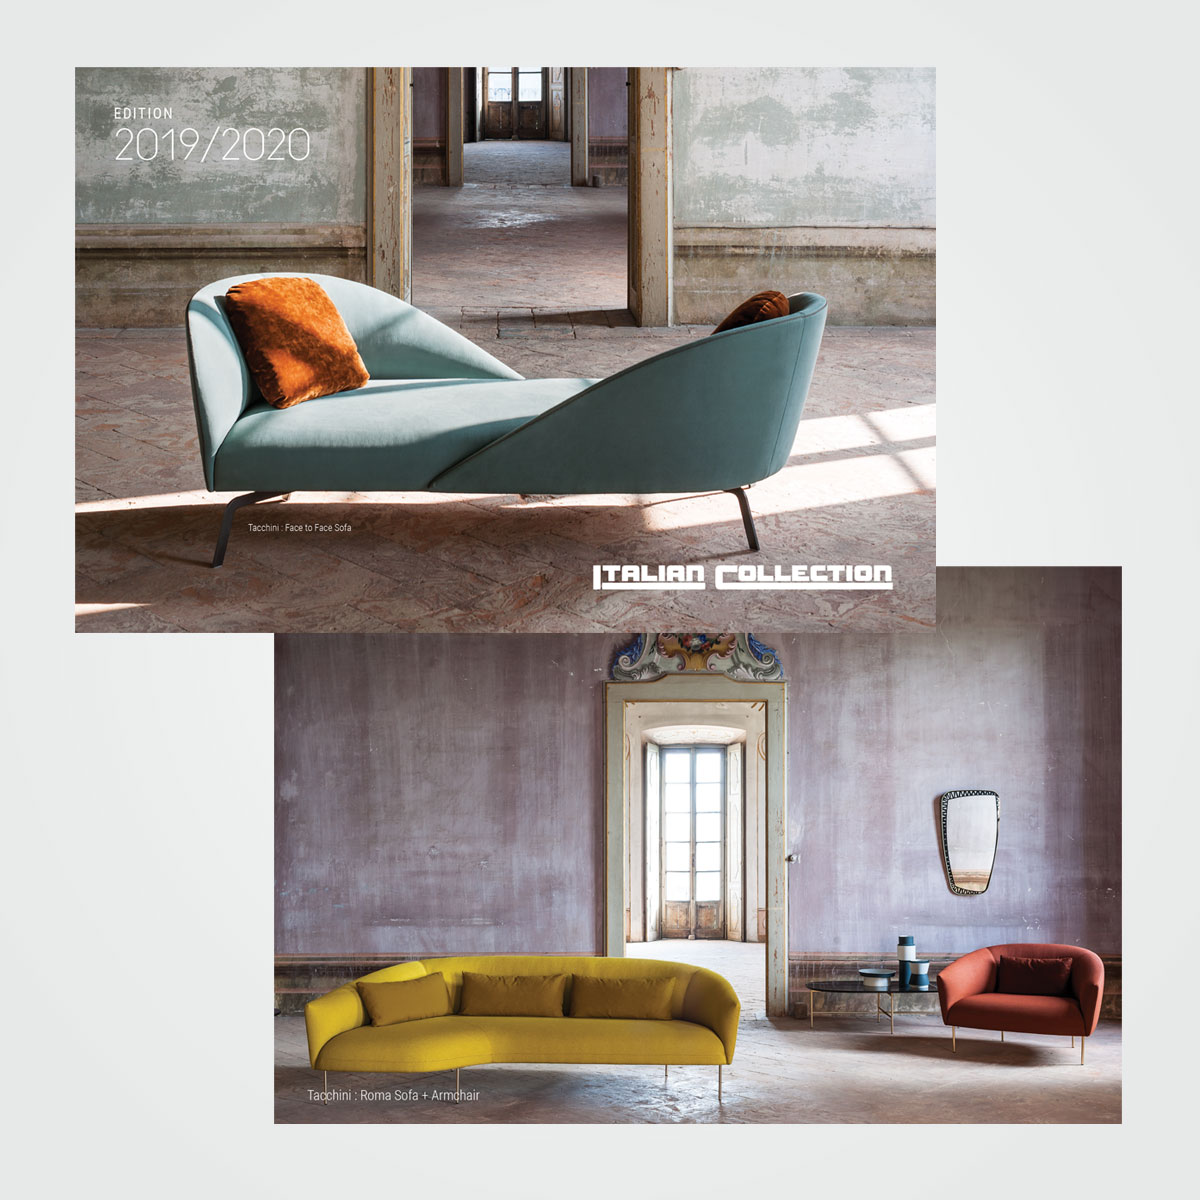 Catalog for Italian Collection